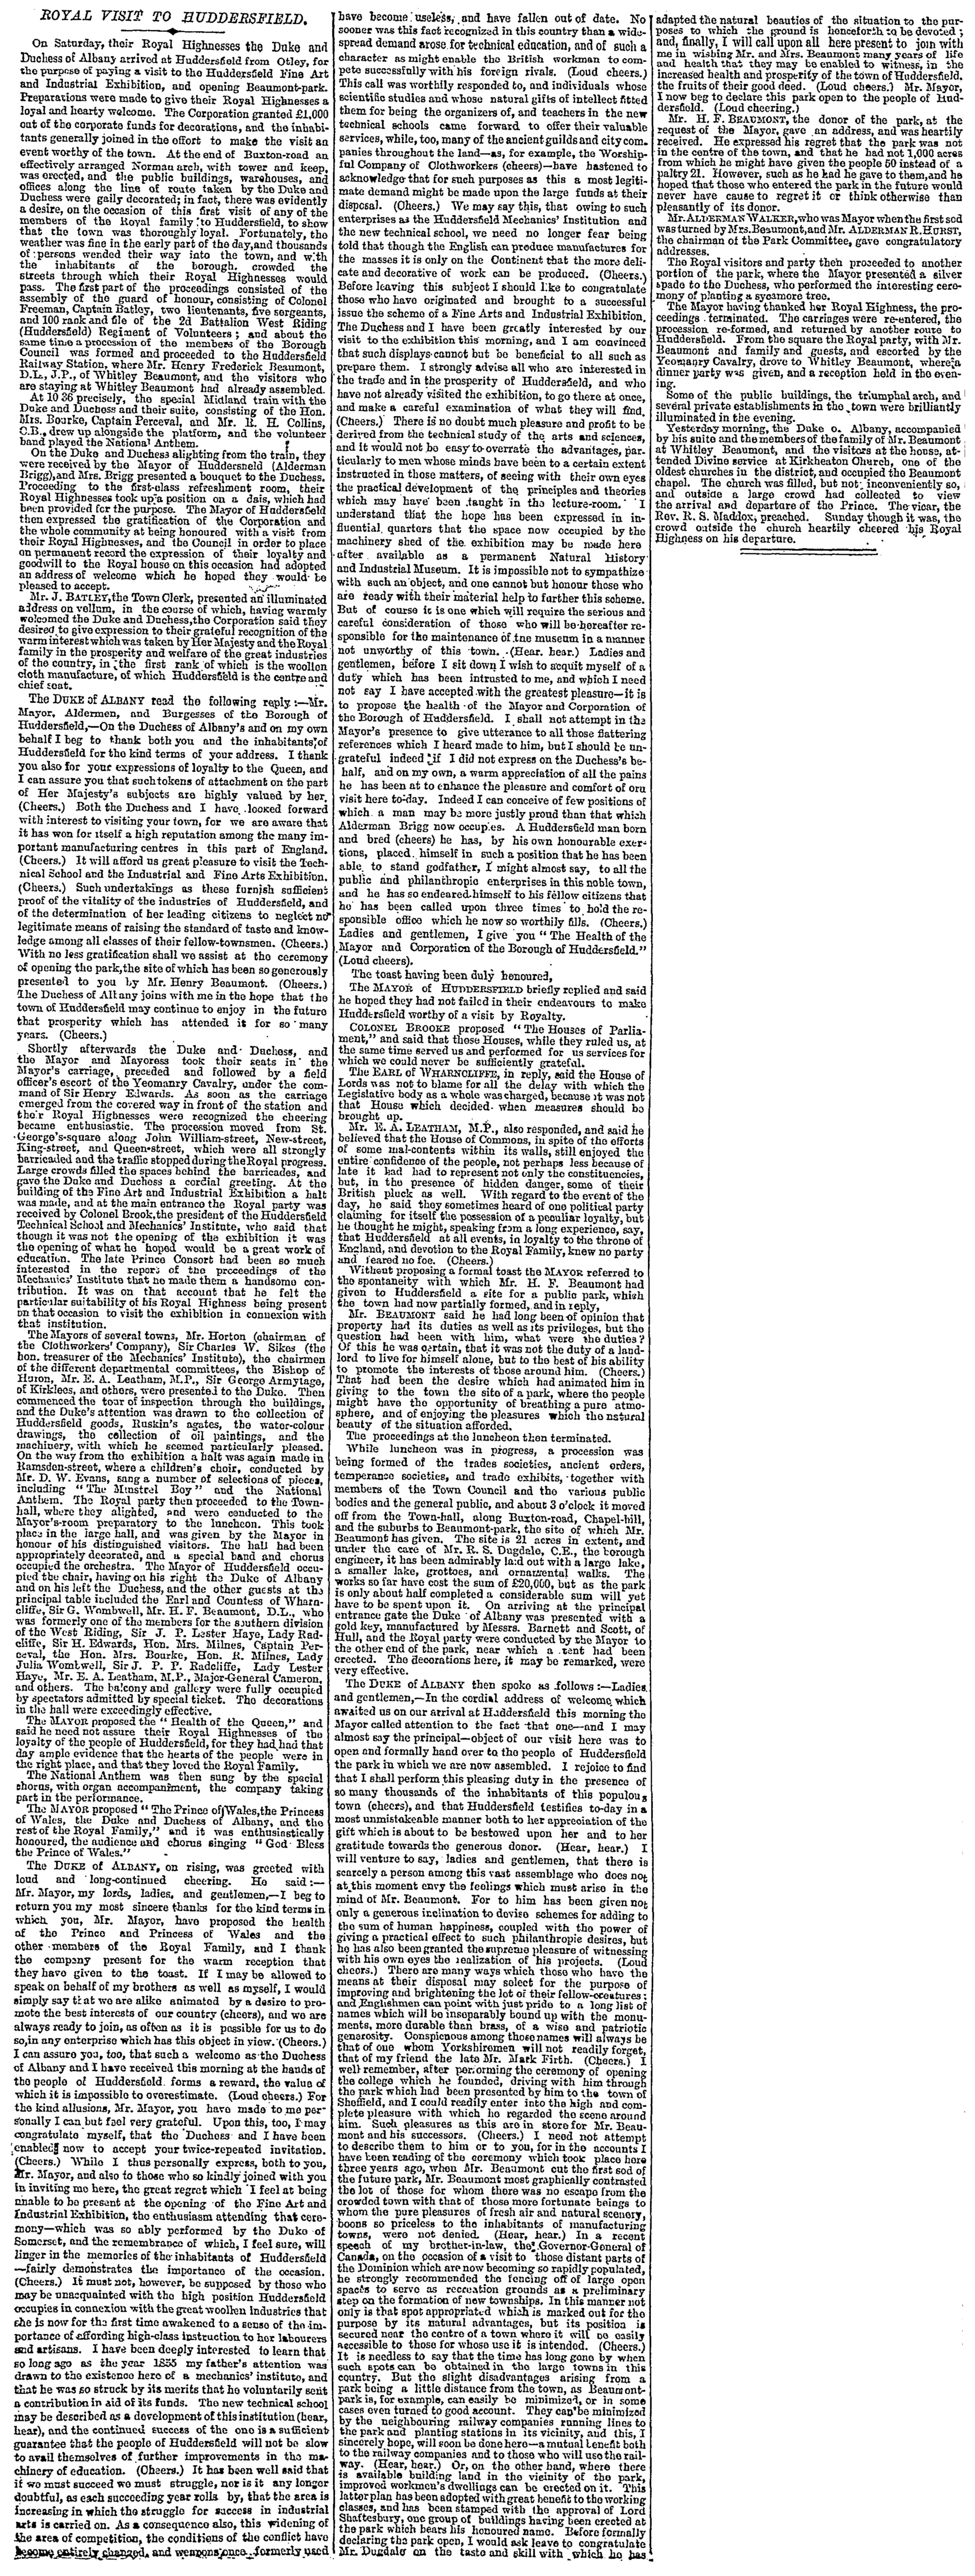 The Times (15.Oct.1883) - Royal Visit To Huddersfield